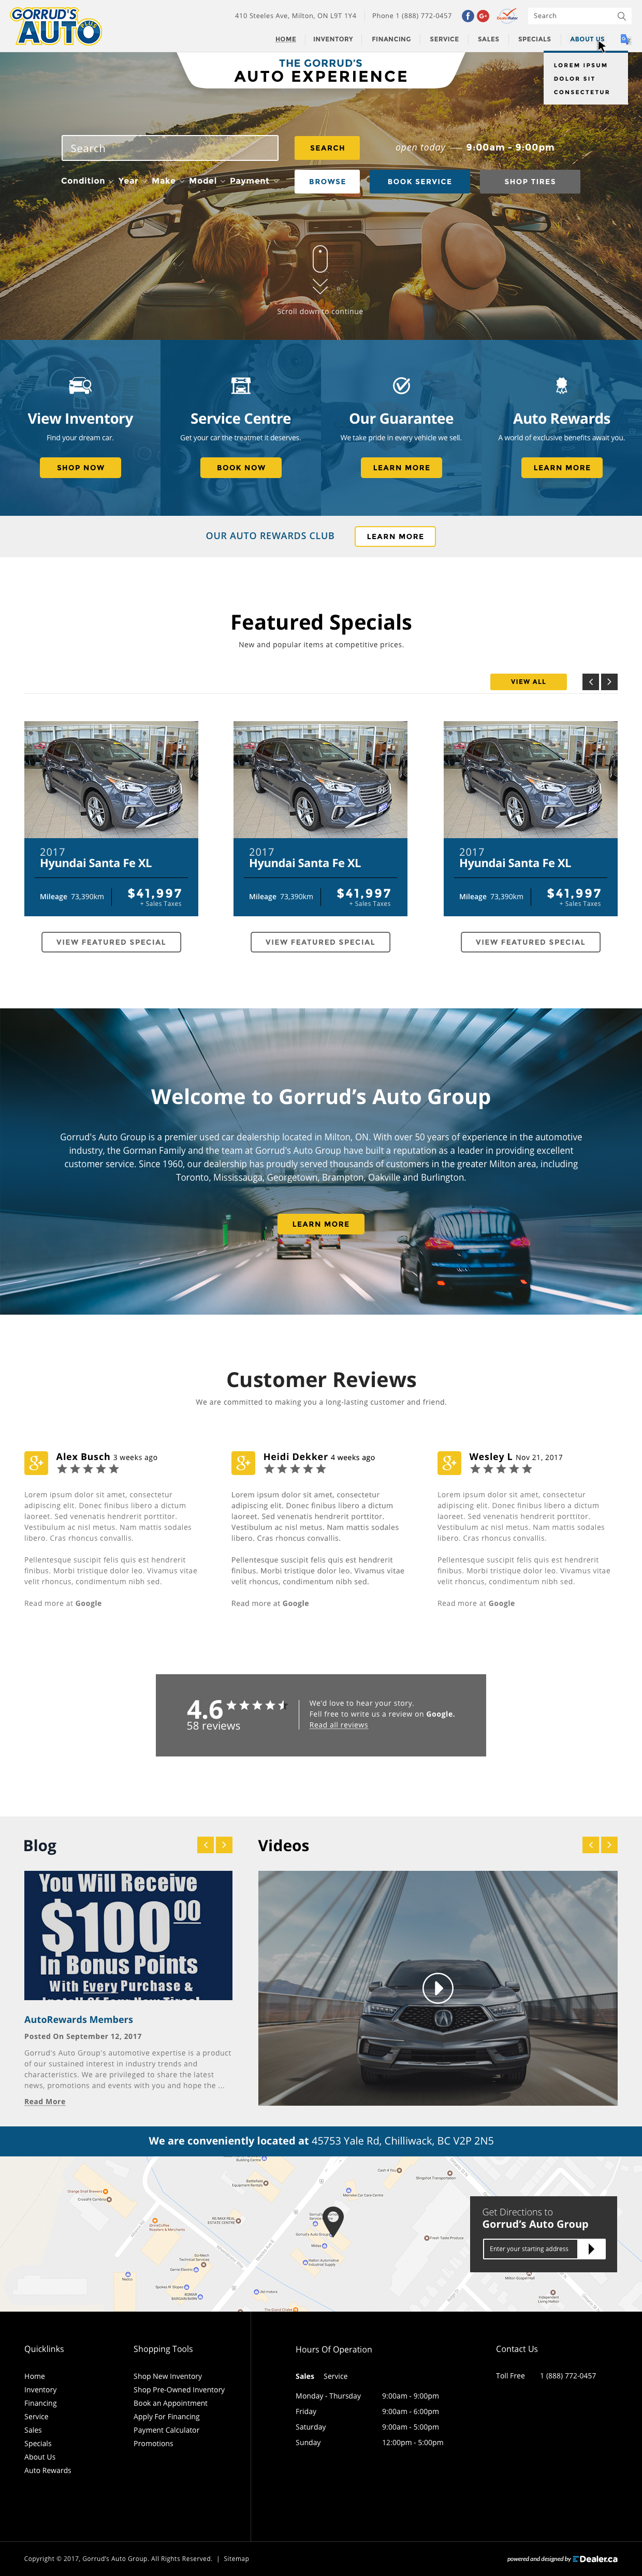 Gorrud's Auto Group